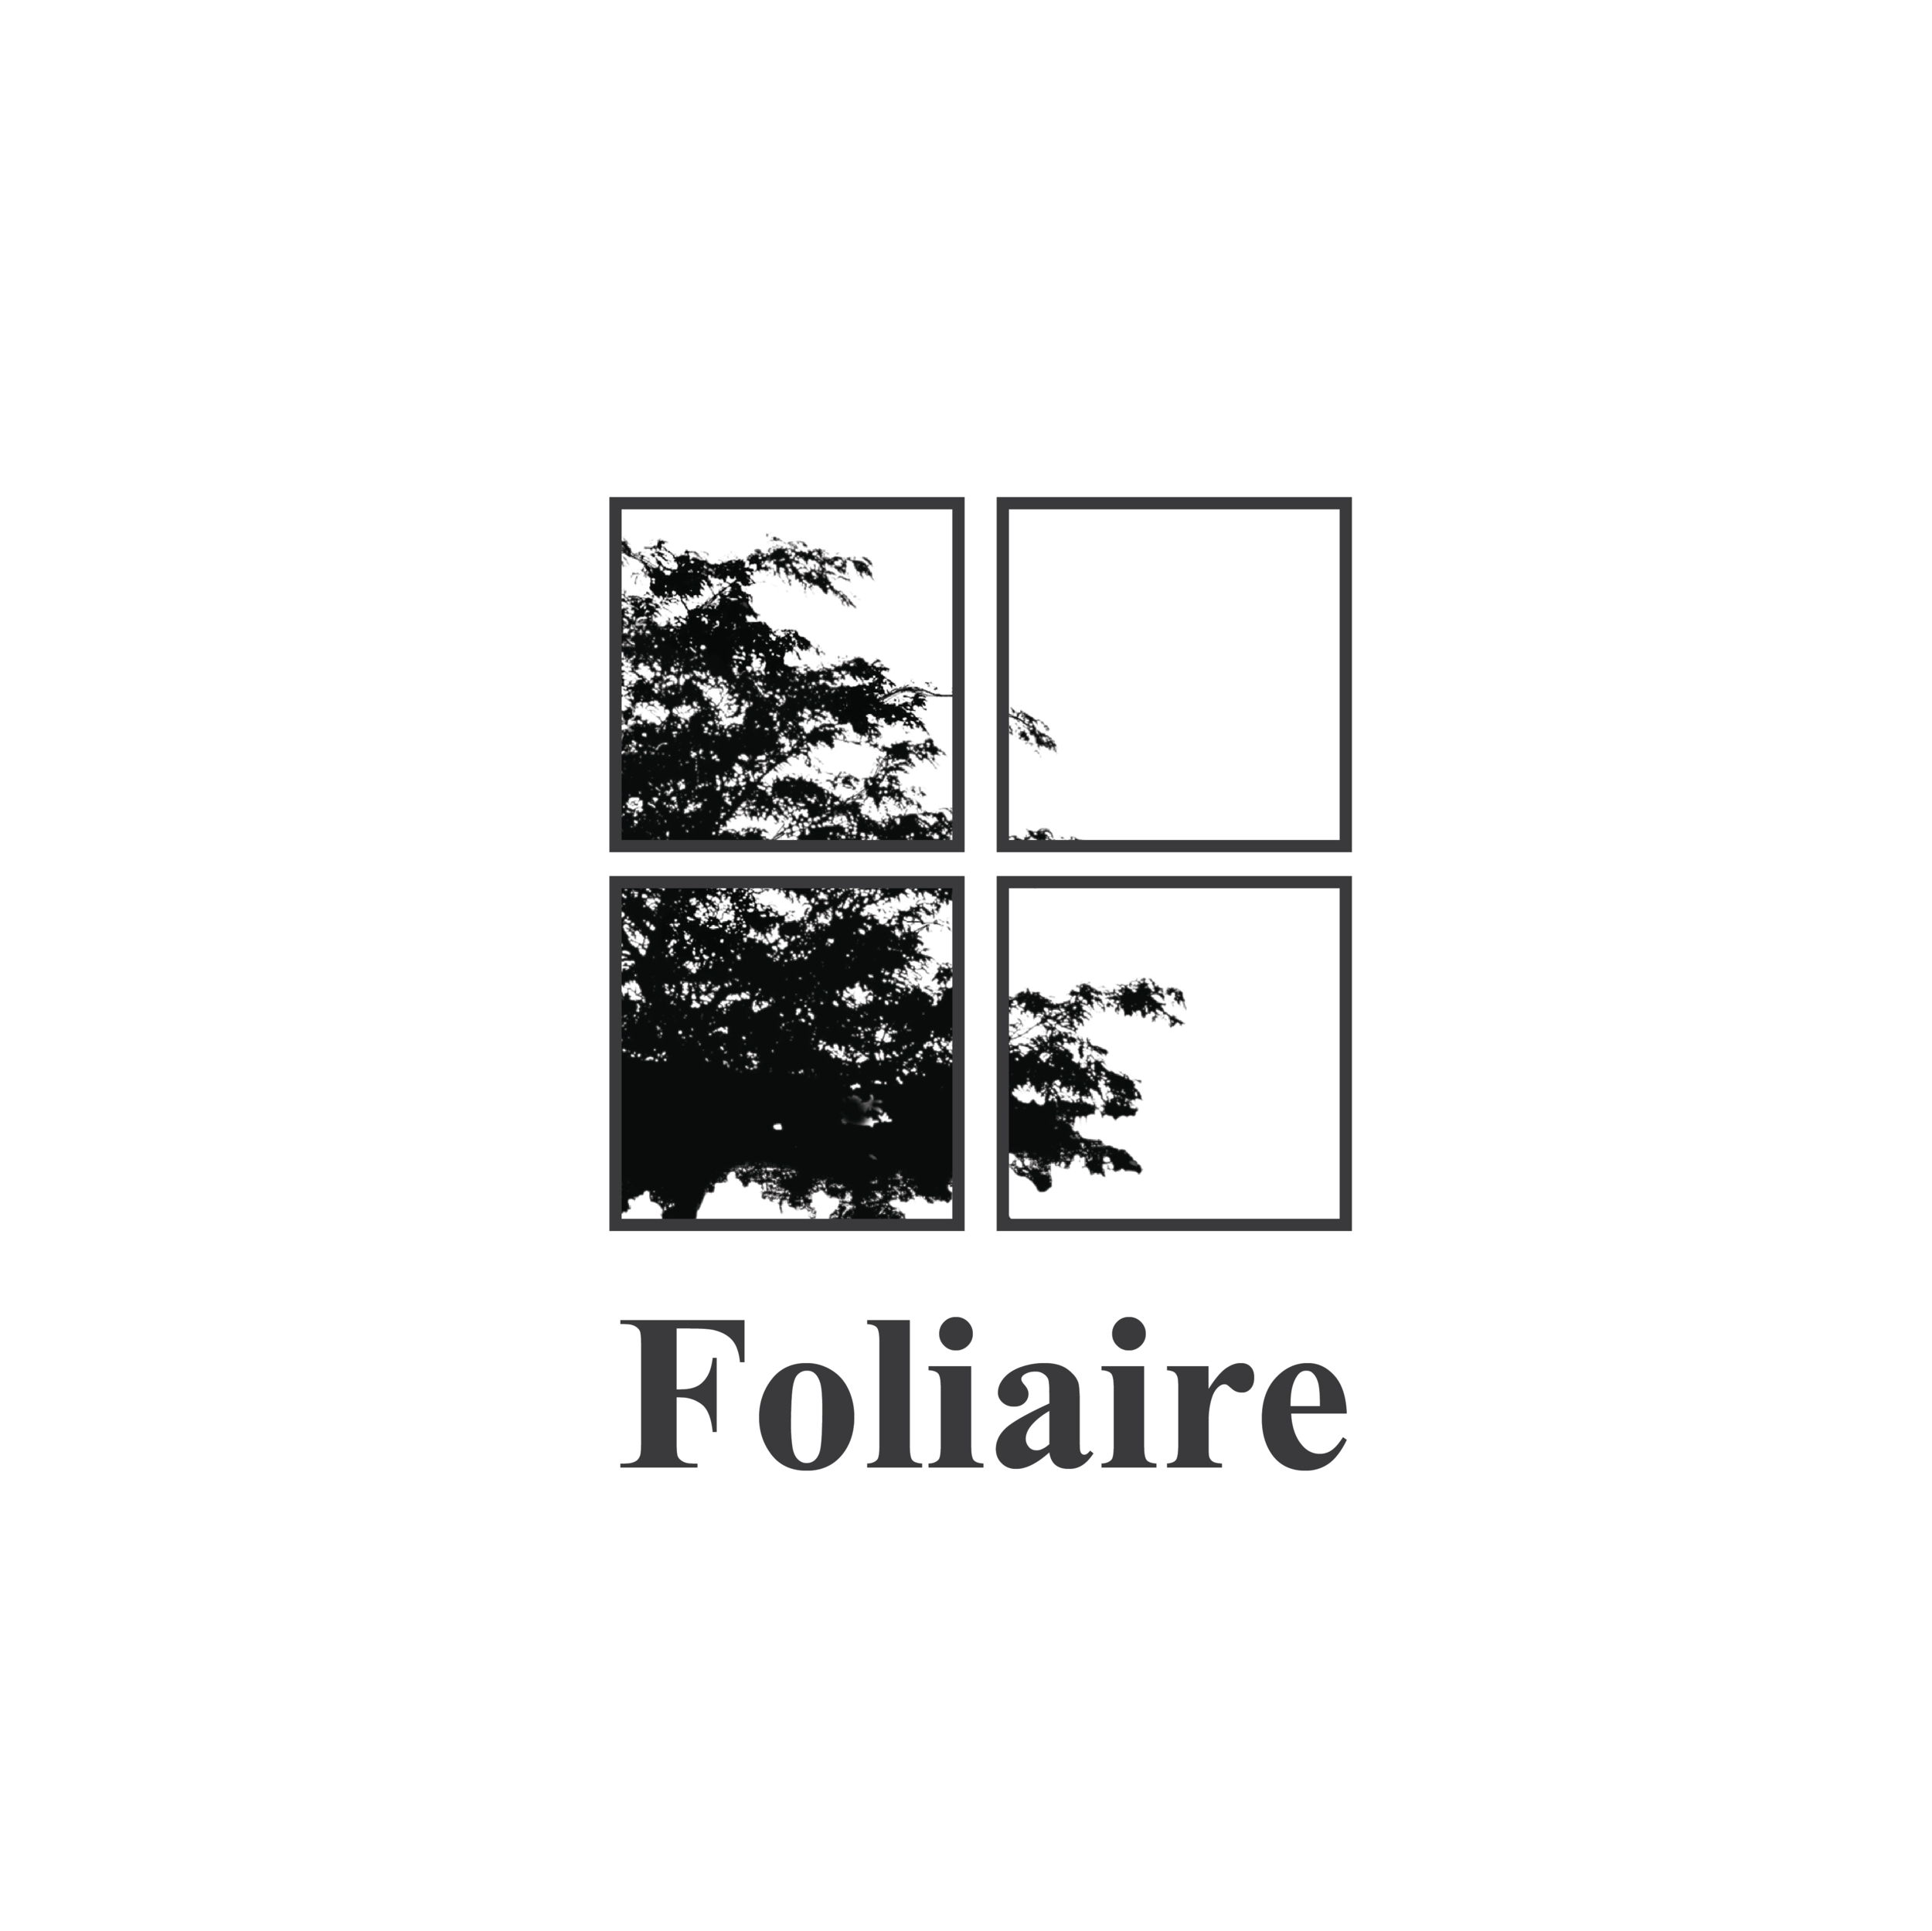 foliaire.png